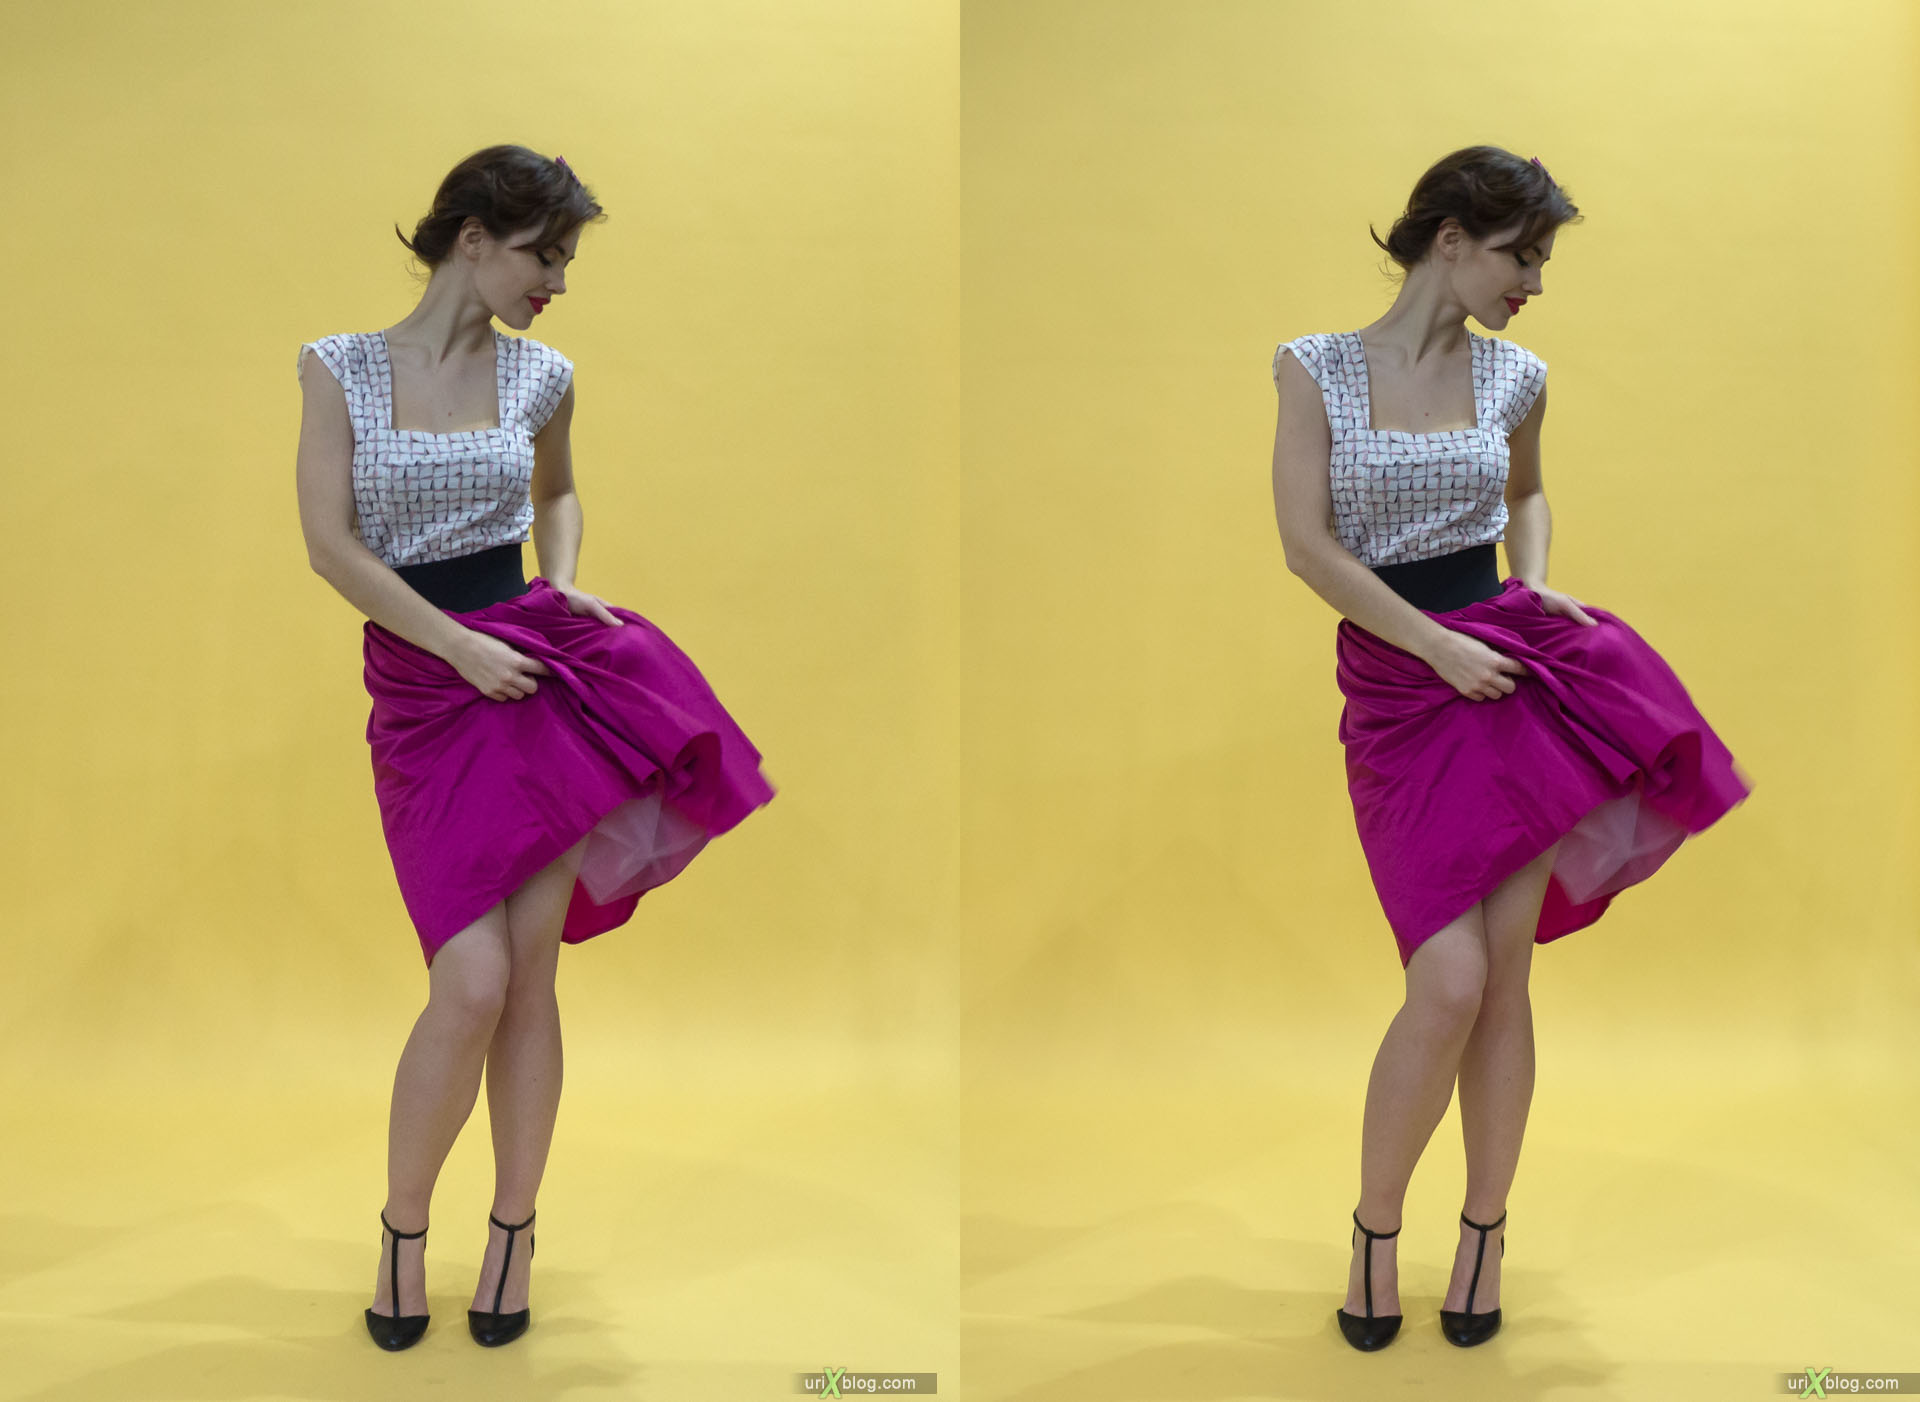 model, girl, Photoforum, exhibition, Crocus Expo, Moscow, Russia, 3D, stereo pair, cross-eyed, crossview, cross view stereo pair, stereoscopic, 2015